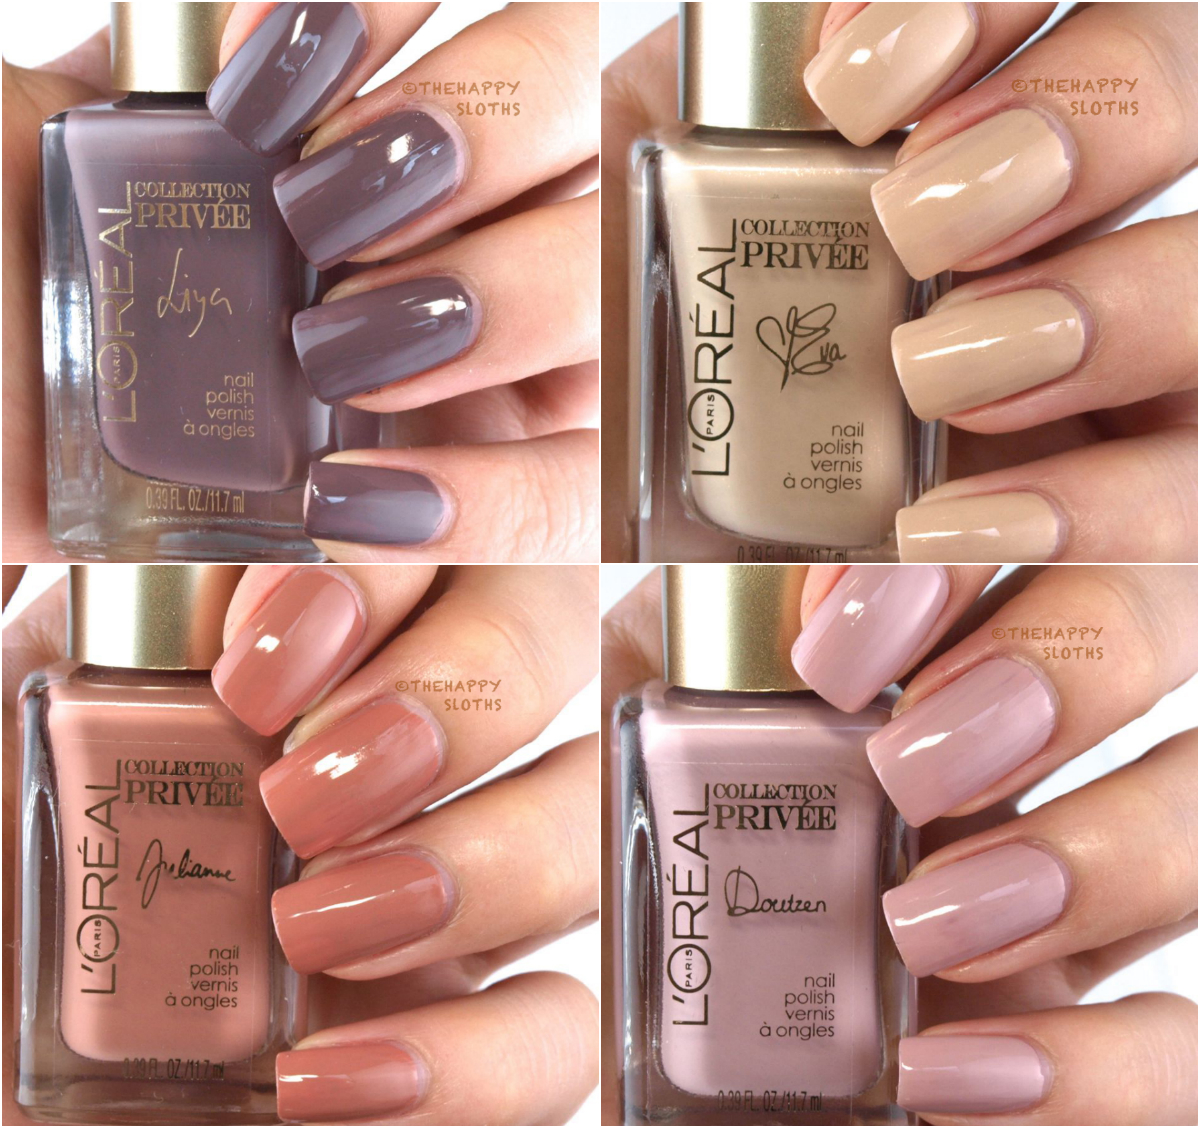 L'Oreal Collection Exclusive Nudes by Color Riche Nail Polish: Review and Swatches